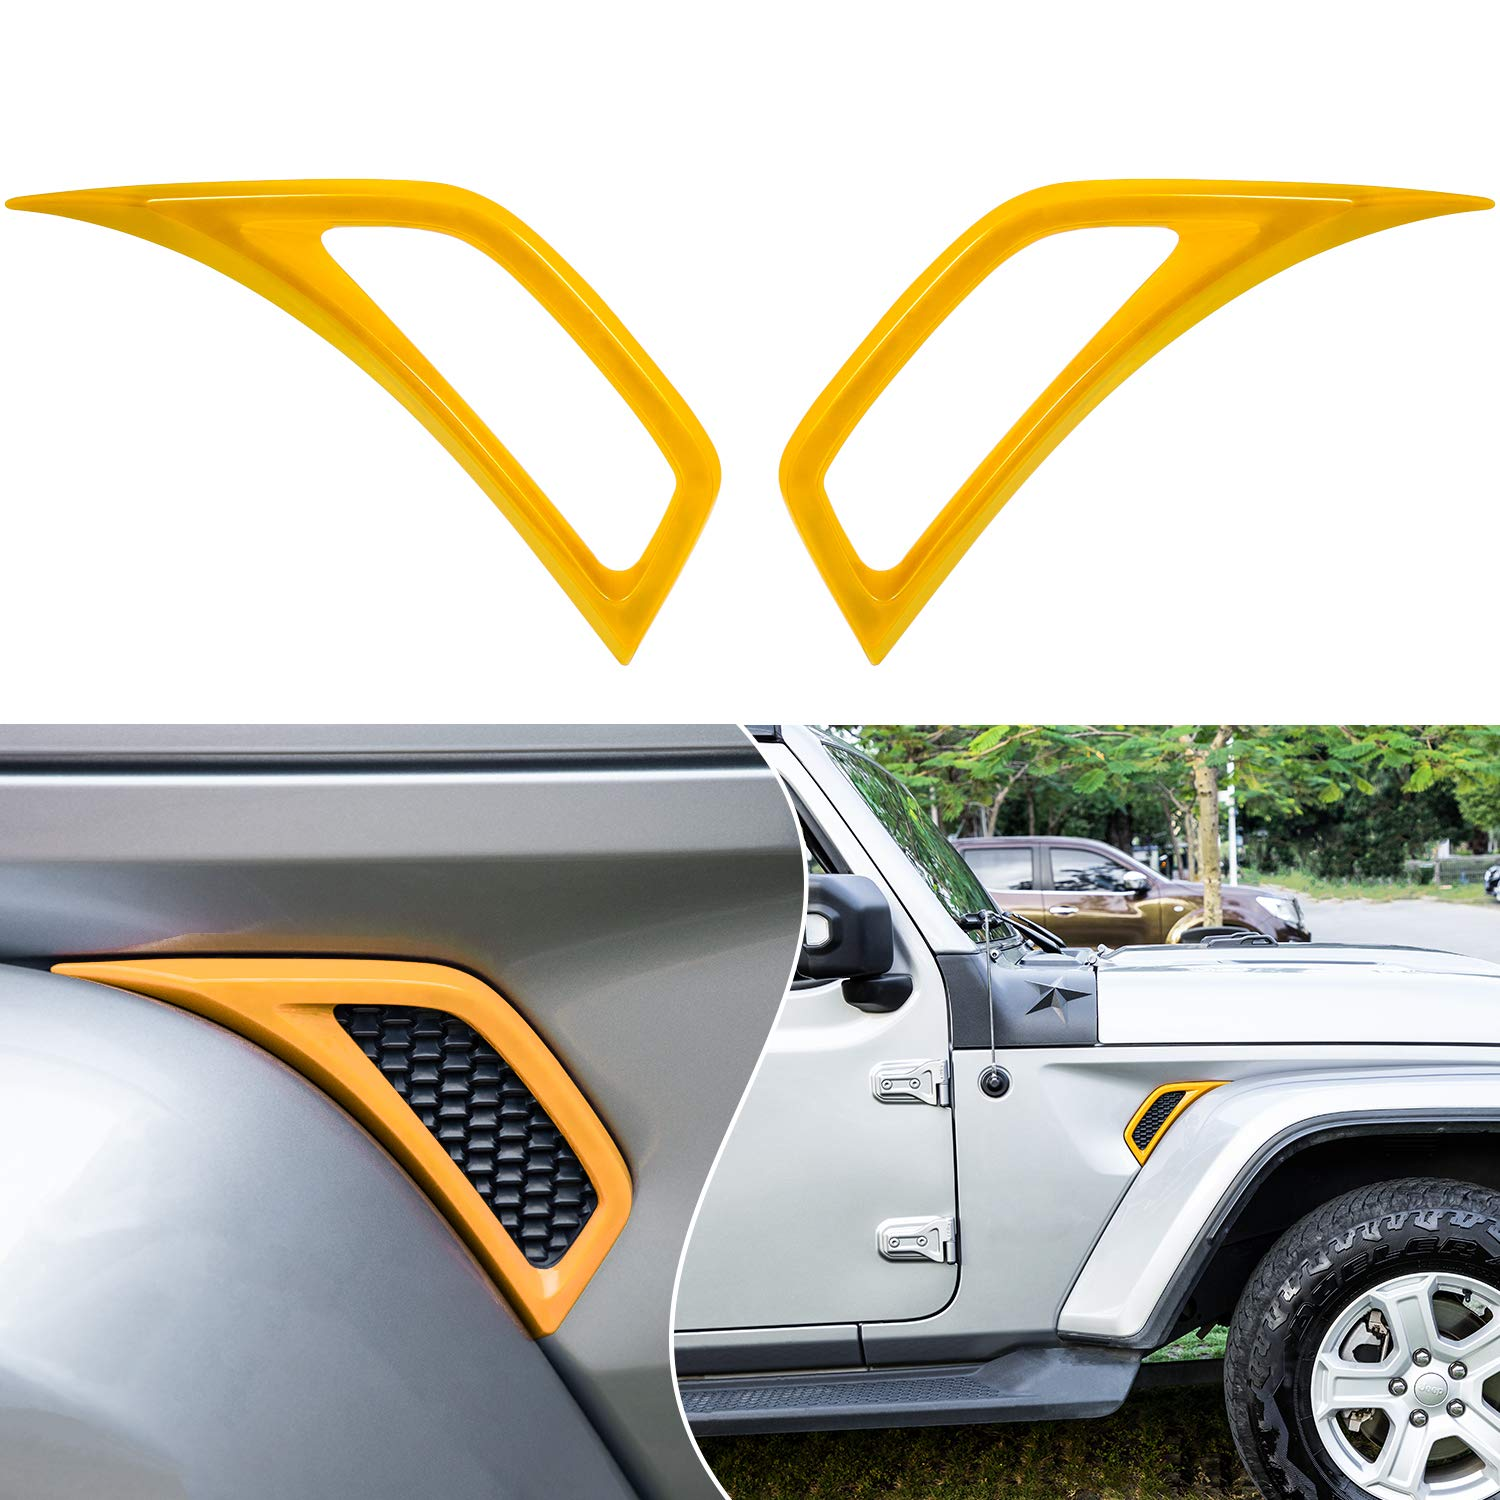 Bonbo Exterior Accessories Car Wheel Eyebrow Side Air Conditioning Vent Outlet Decoration Cover Trim ABS for 2018-2021 Jeep Wrangler JL JLU & Gladiator JT 2PCS (Yellow)